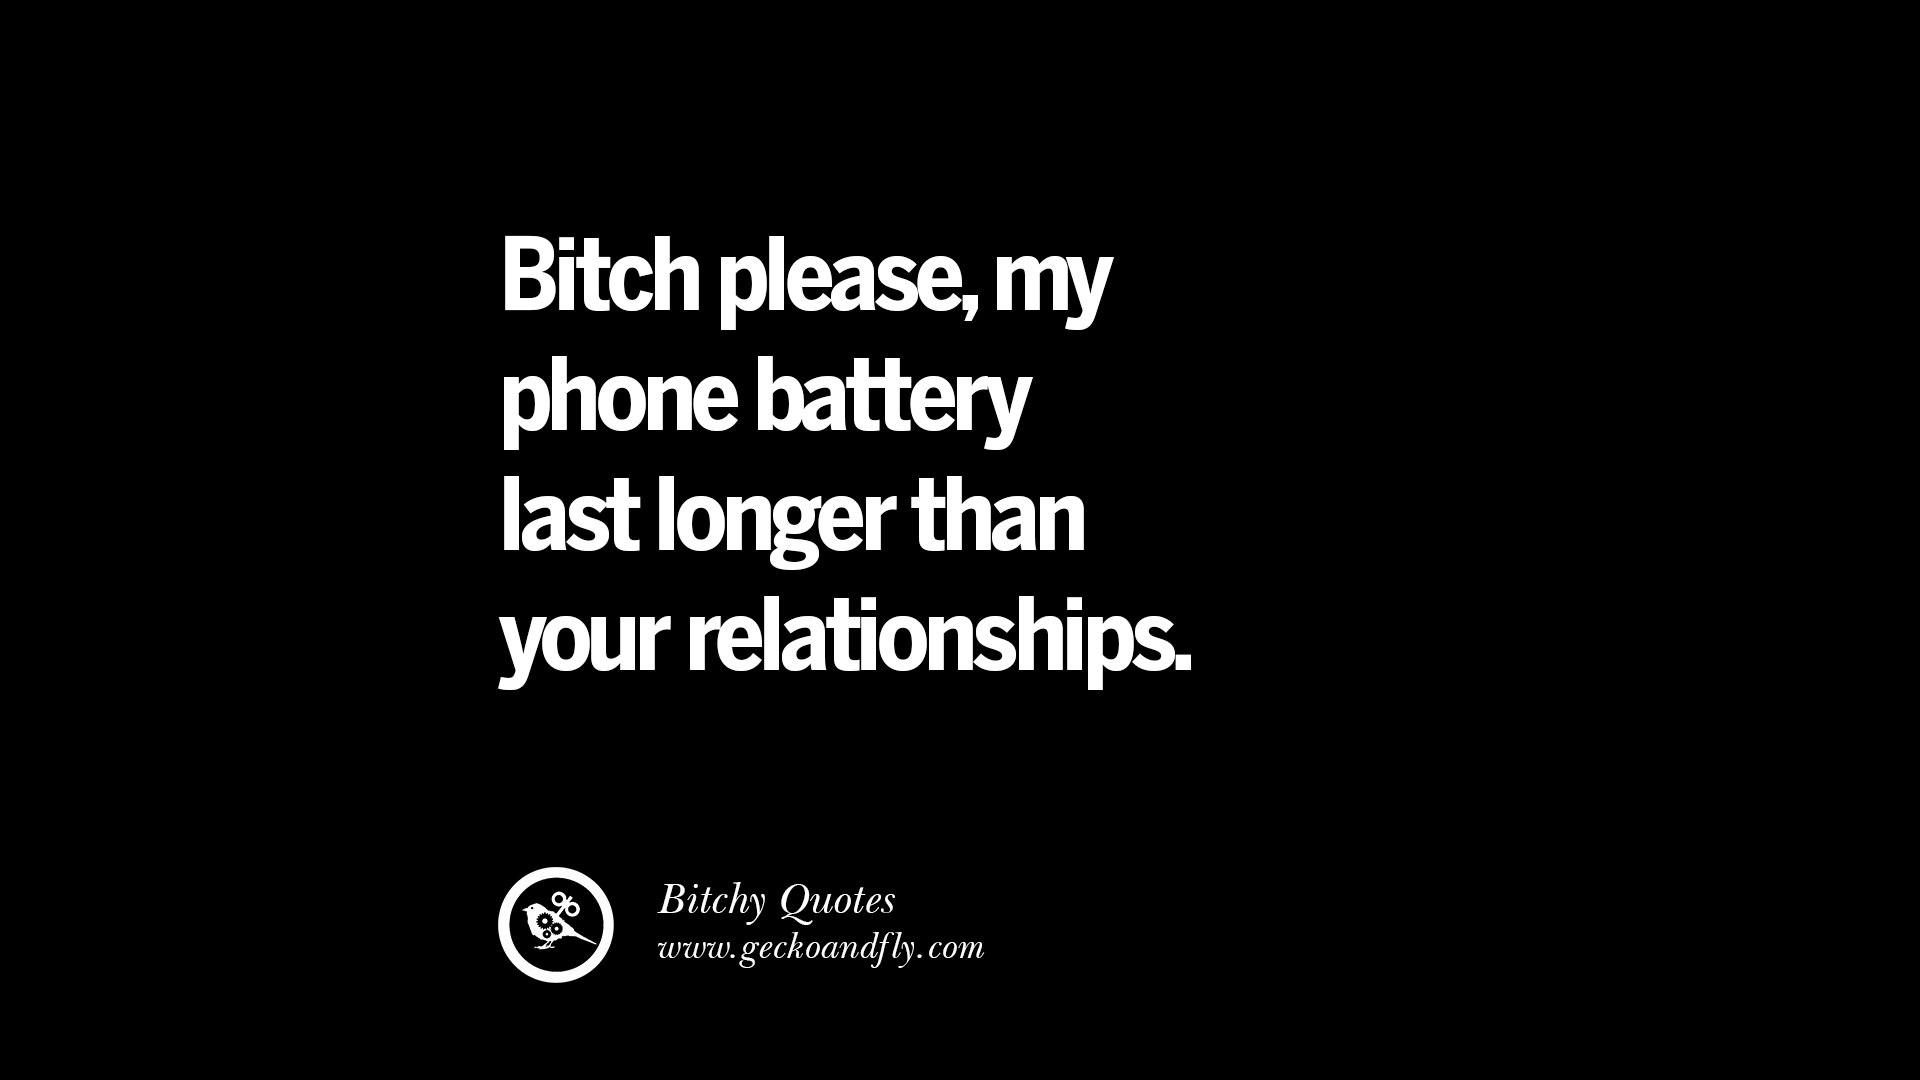 and hate that our relationship is over the phone